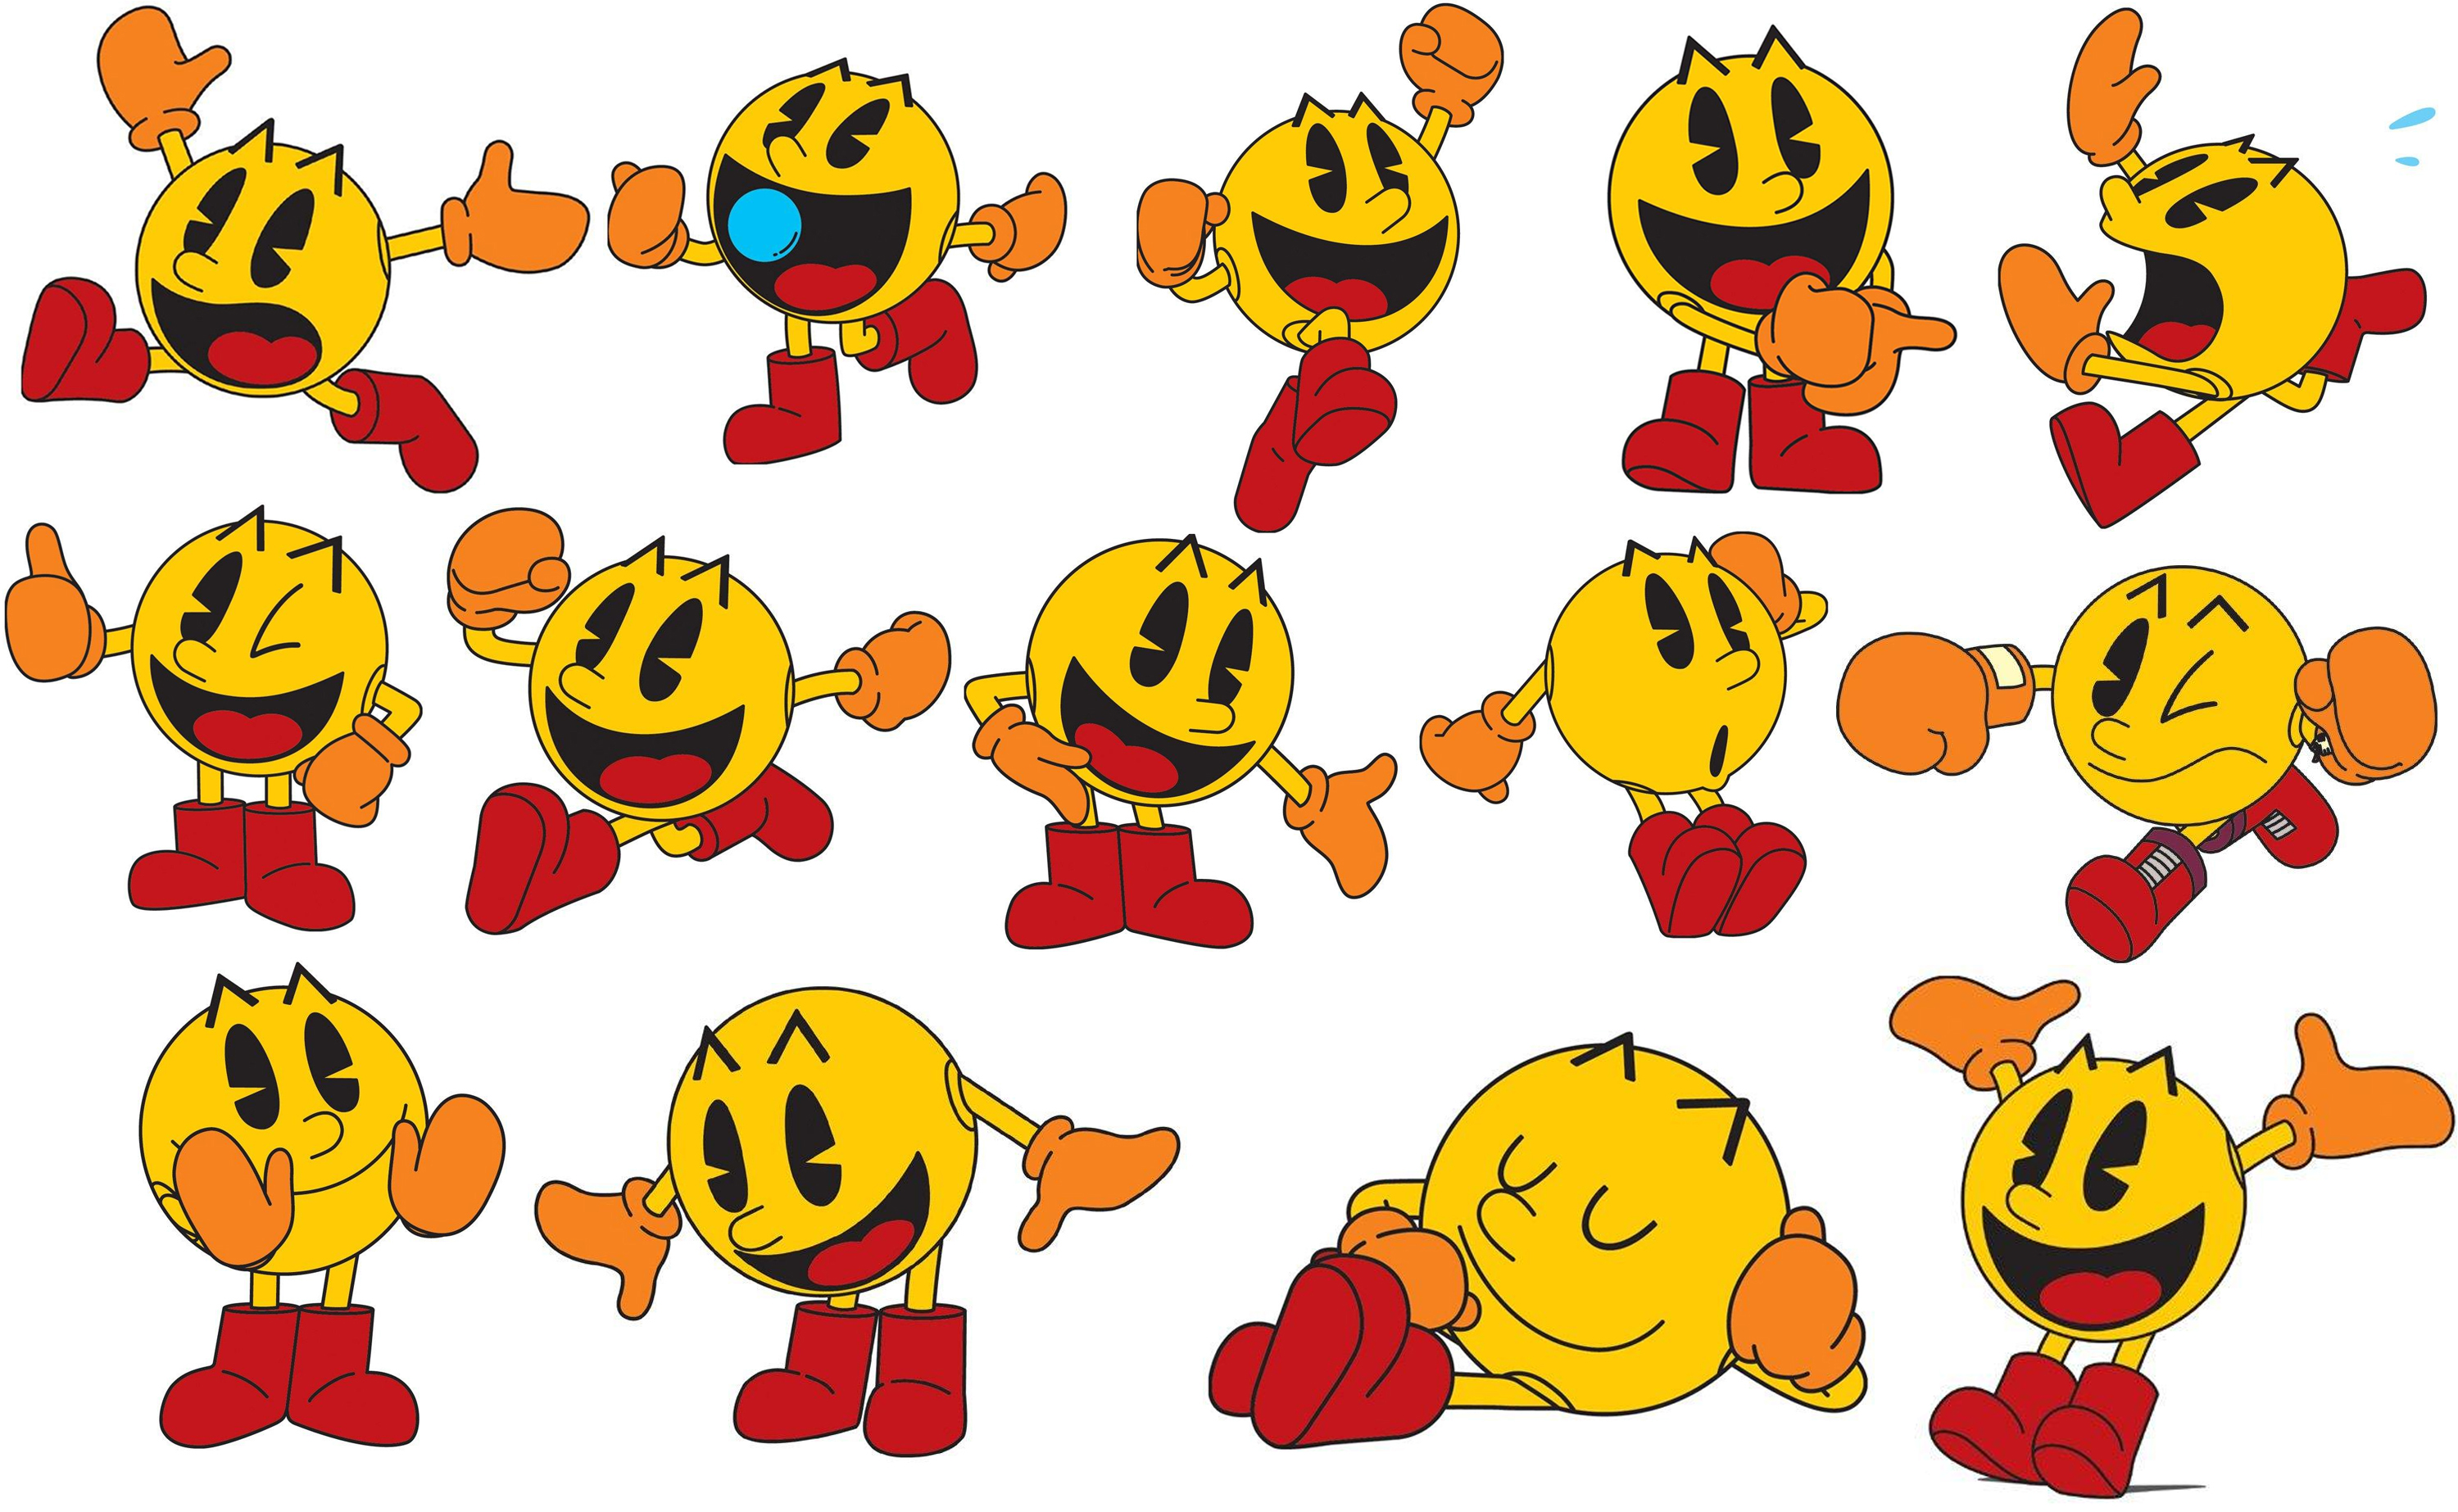 Pacman Deviantart 2019: Pac-Man And The Ghostly Adventures Favourites By Yurafo On